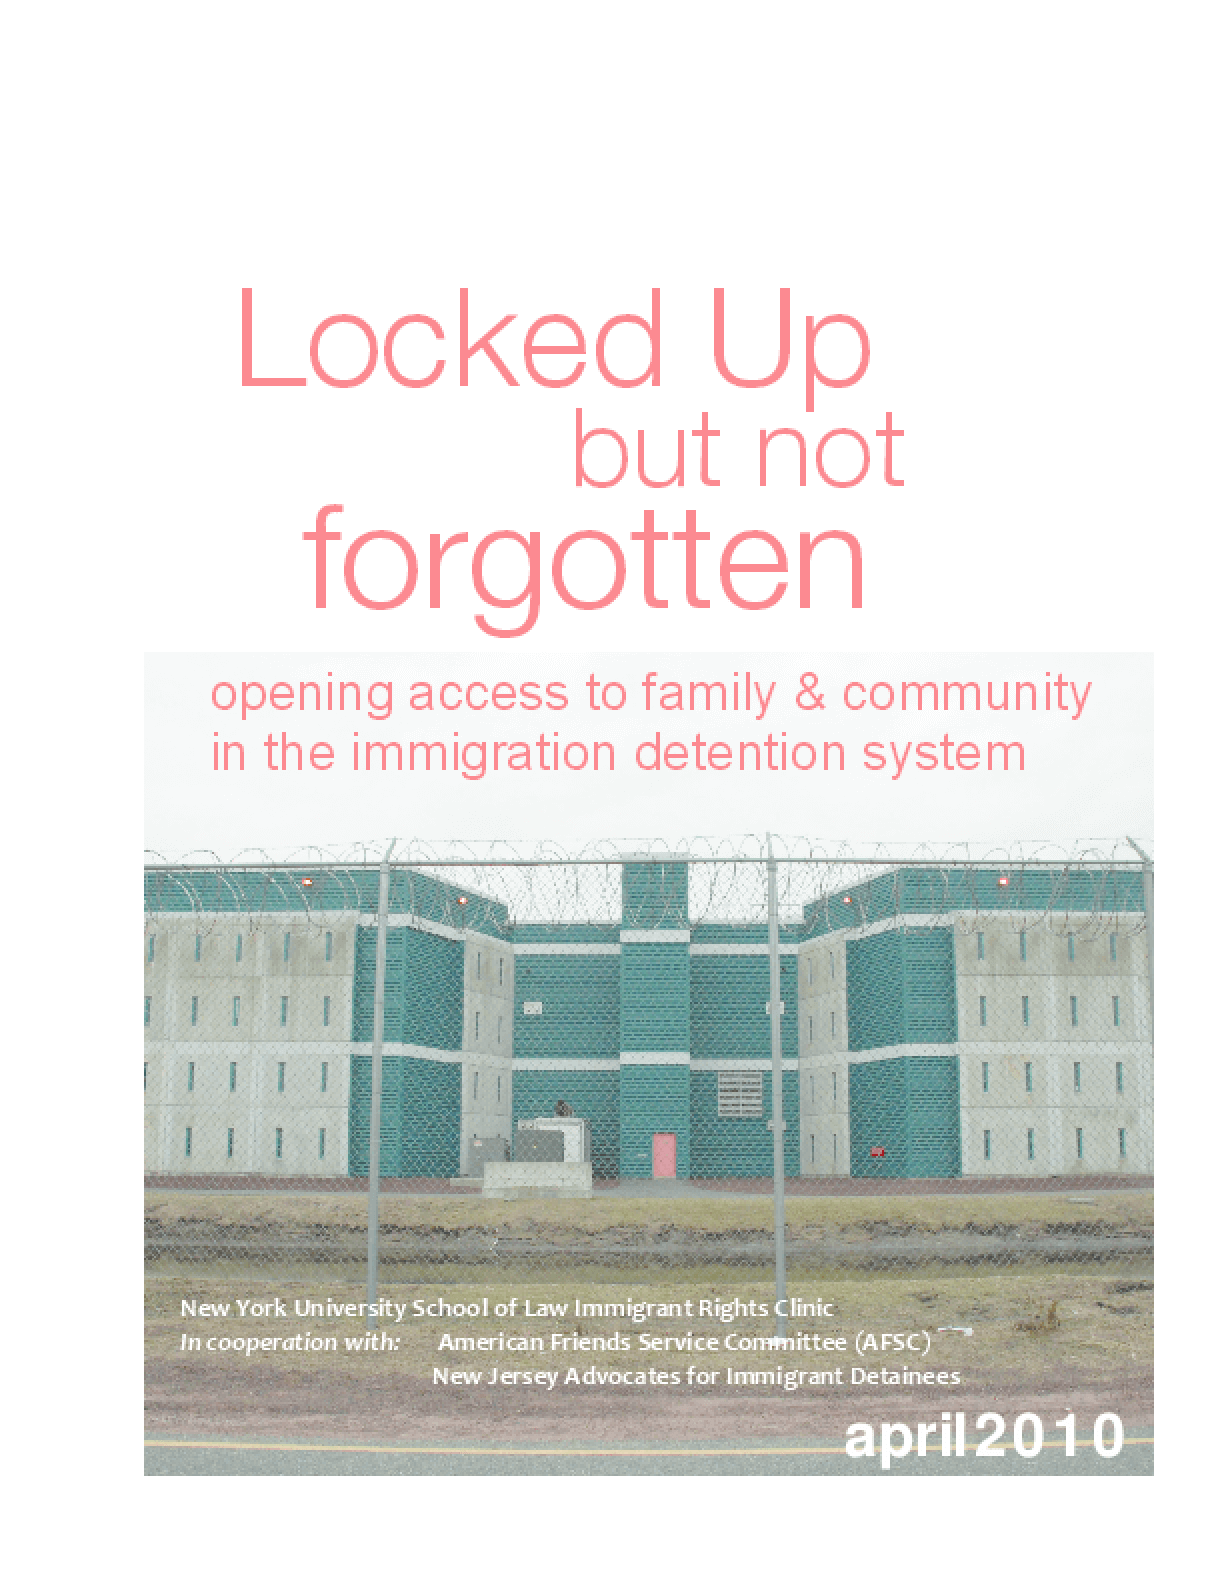 Locked Up But Not Forgotten: Opening Access to Family & Community in the Immigration Detention System